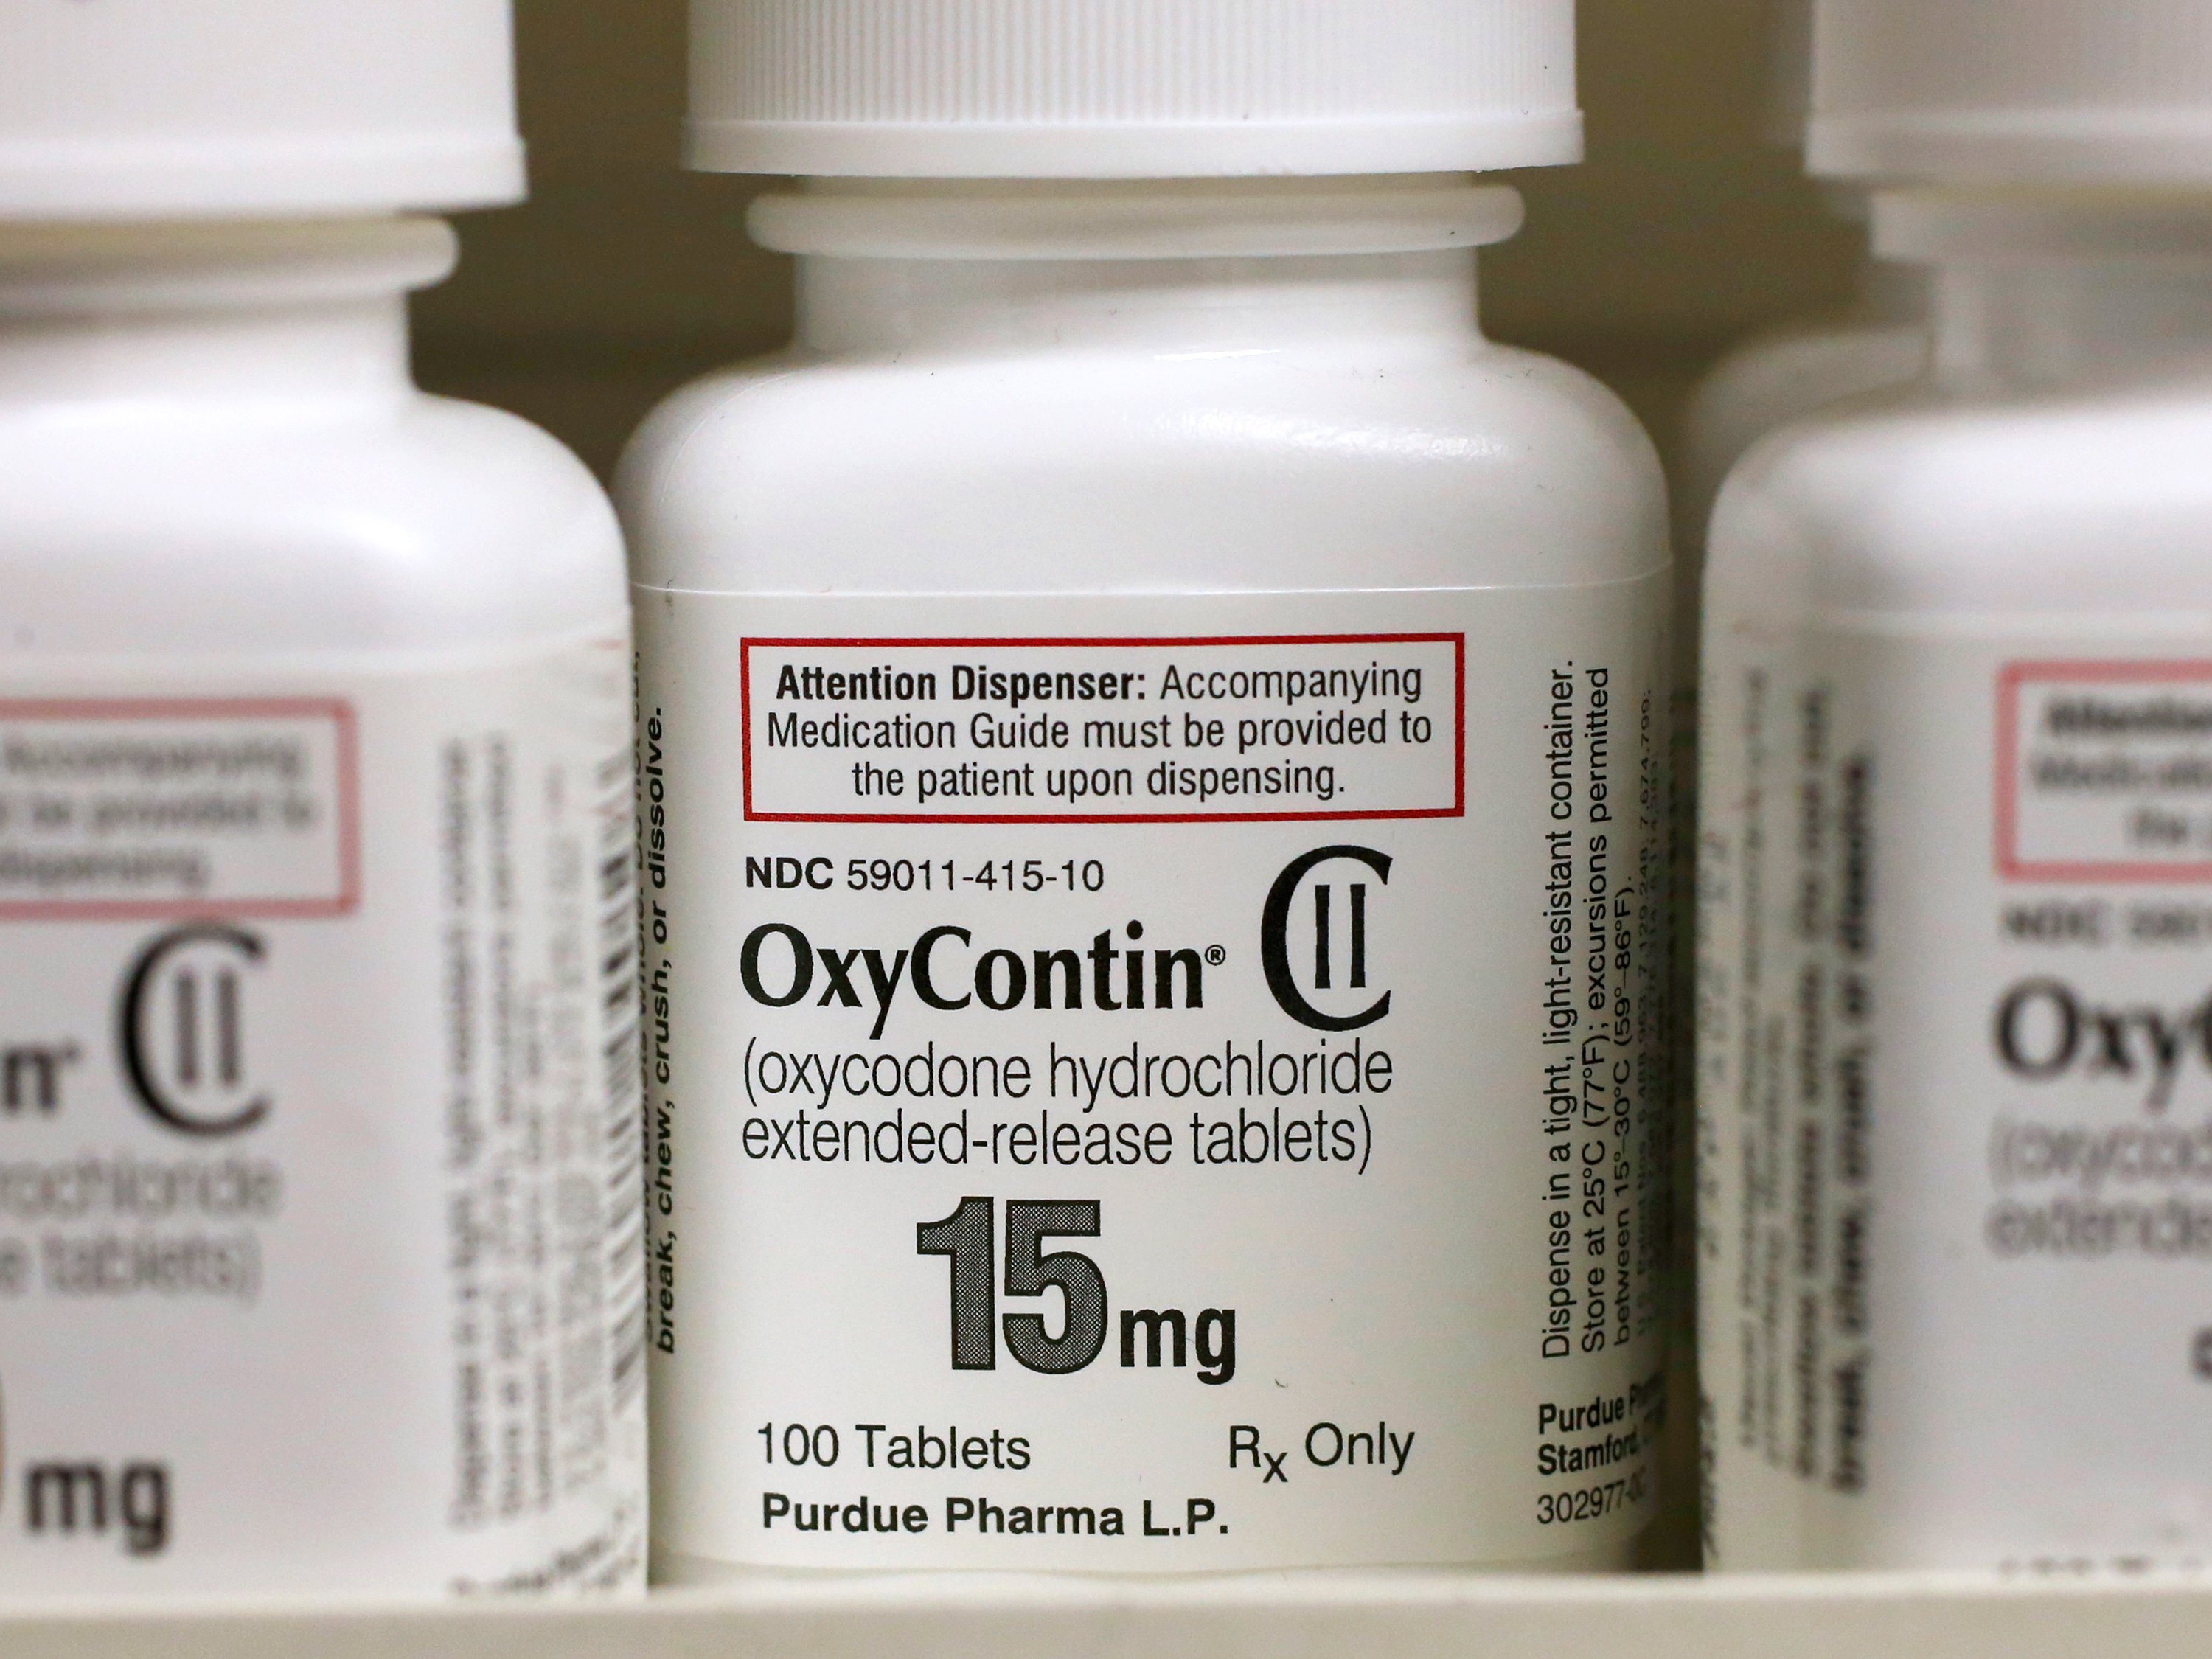 4 pharmaceutical companies accused in the opioid epidemic reach a $260 million settlement just before trial